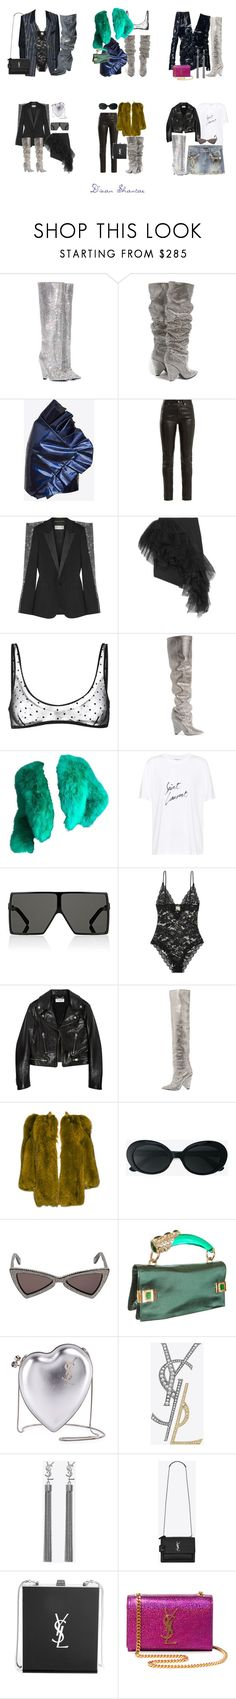 """""""Saint Laurent Gang, Gang, Gang, Gang, Gang"""" by adswil ❤ liked on Polyvore featuring Yves Saint Laurent, Hedi Slimane, YSL RIVE GAUCHE and Tom Ford"""